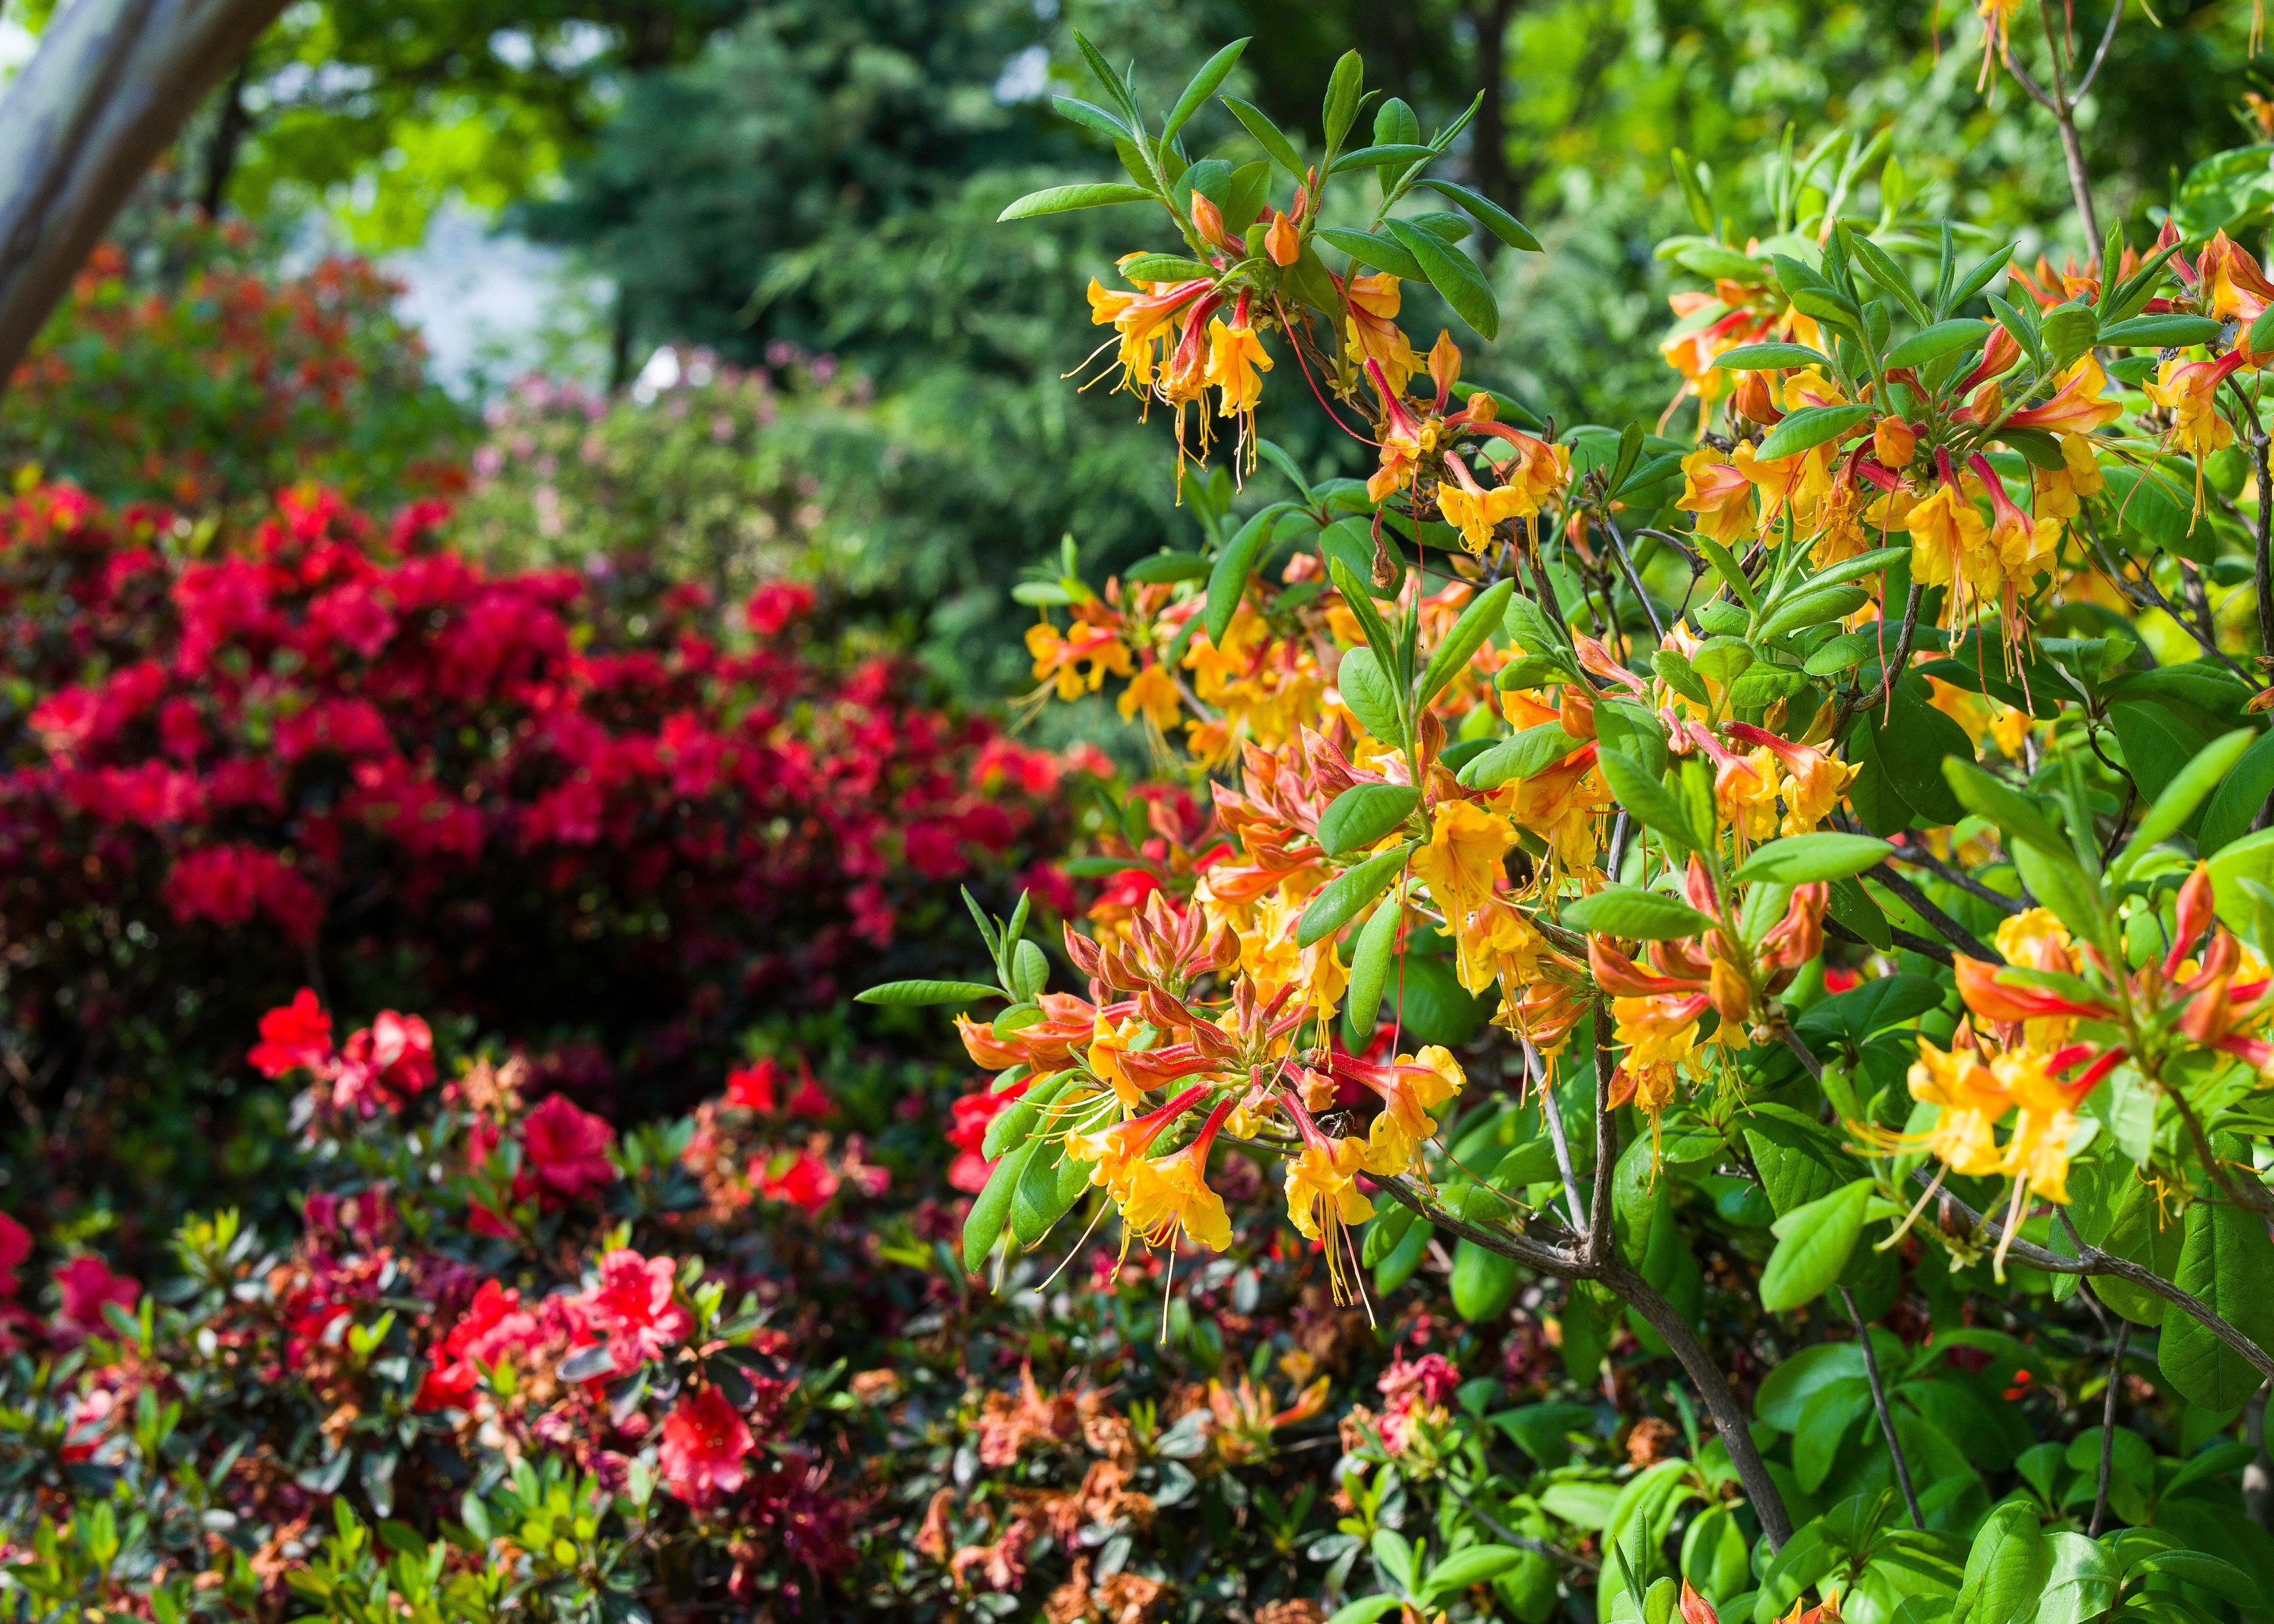 Gardening Resources And Tips Dallas Arboretum And Botanical Garden